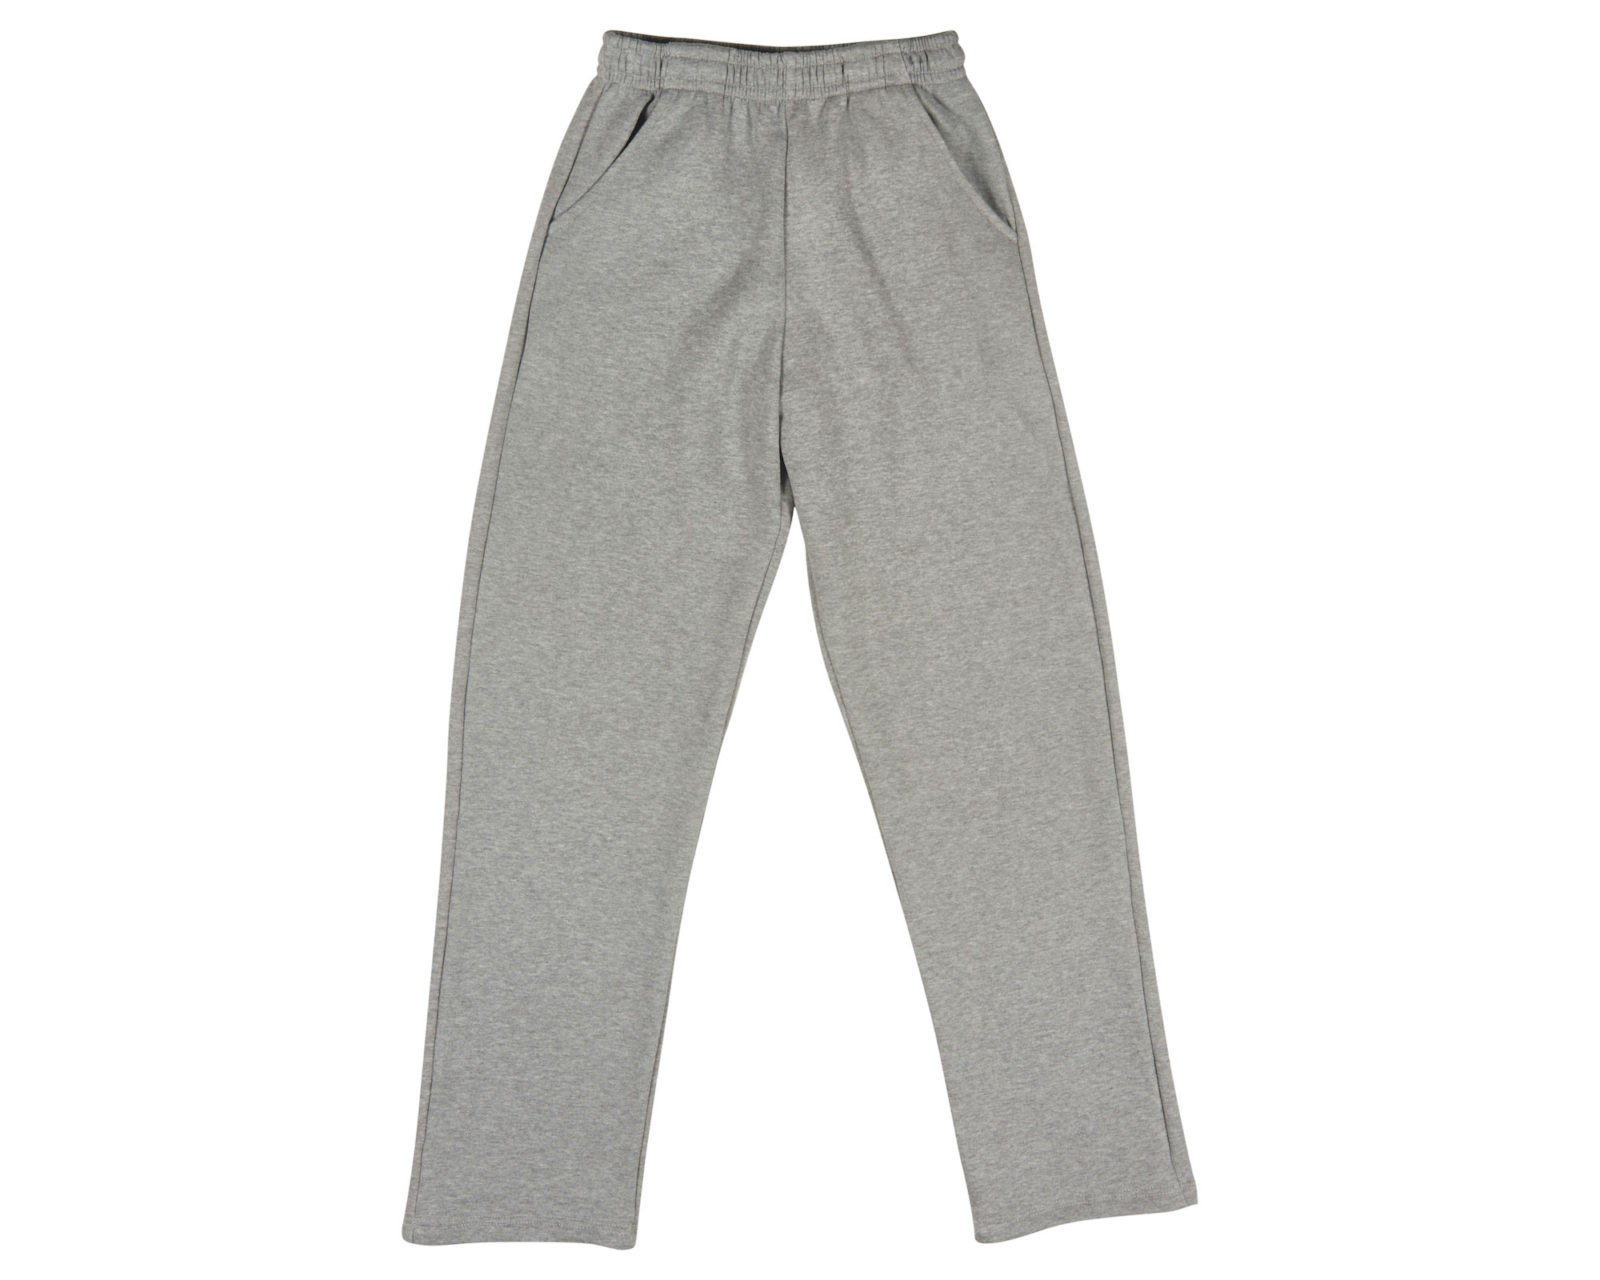 Qualitops Mens Classic Track Pants Australian made